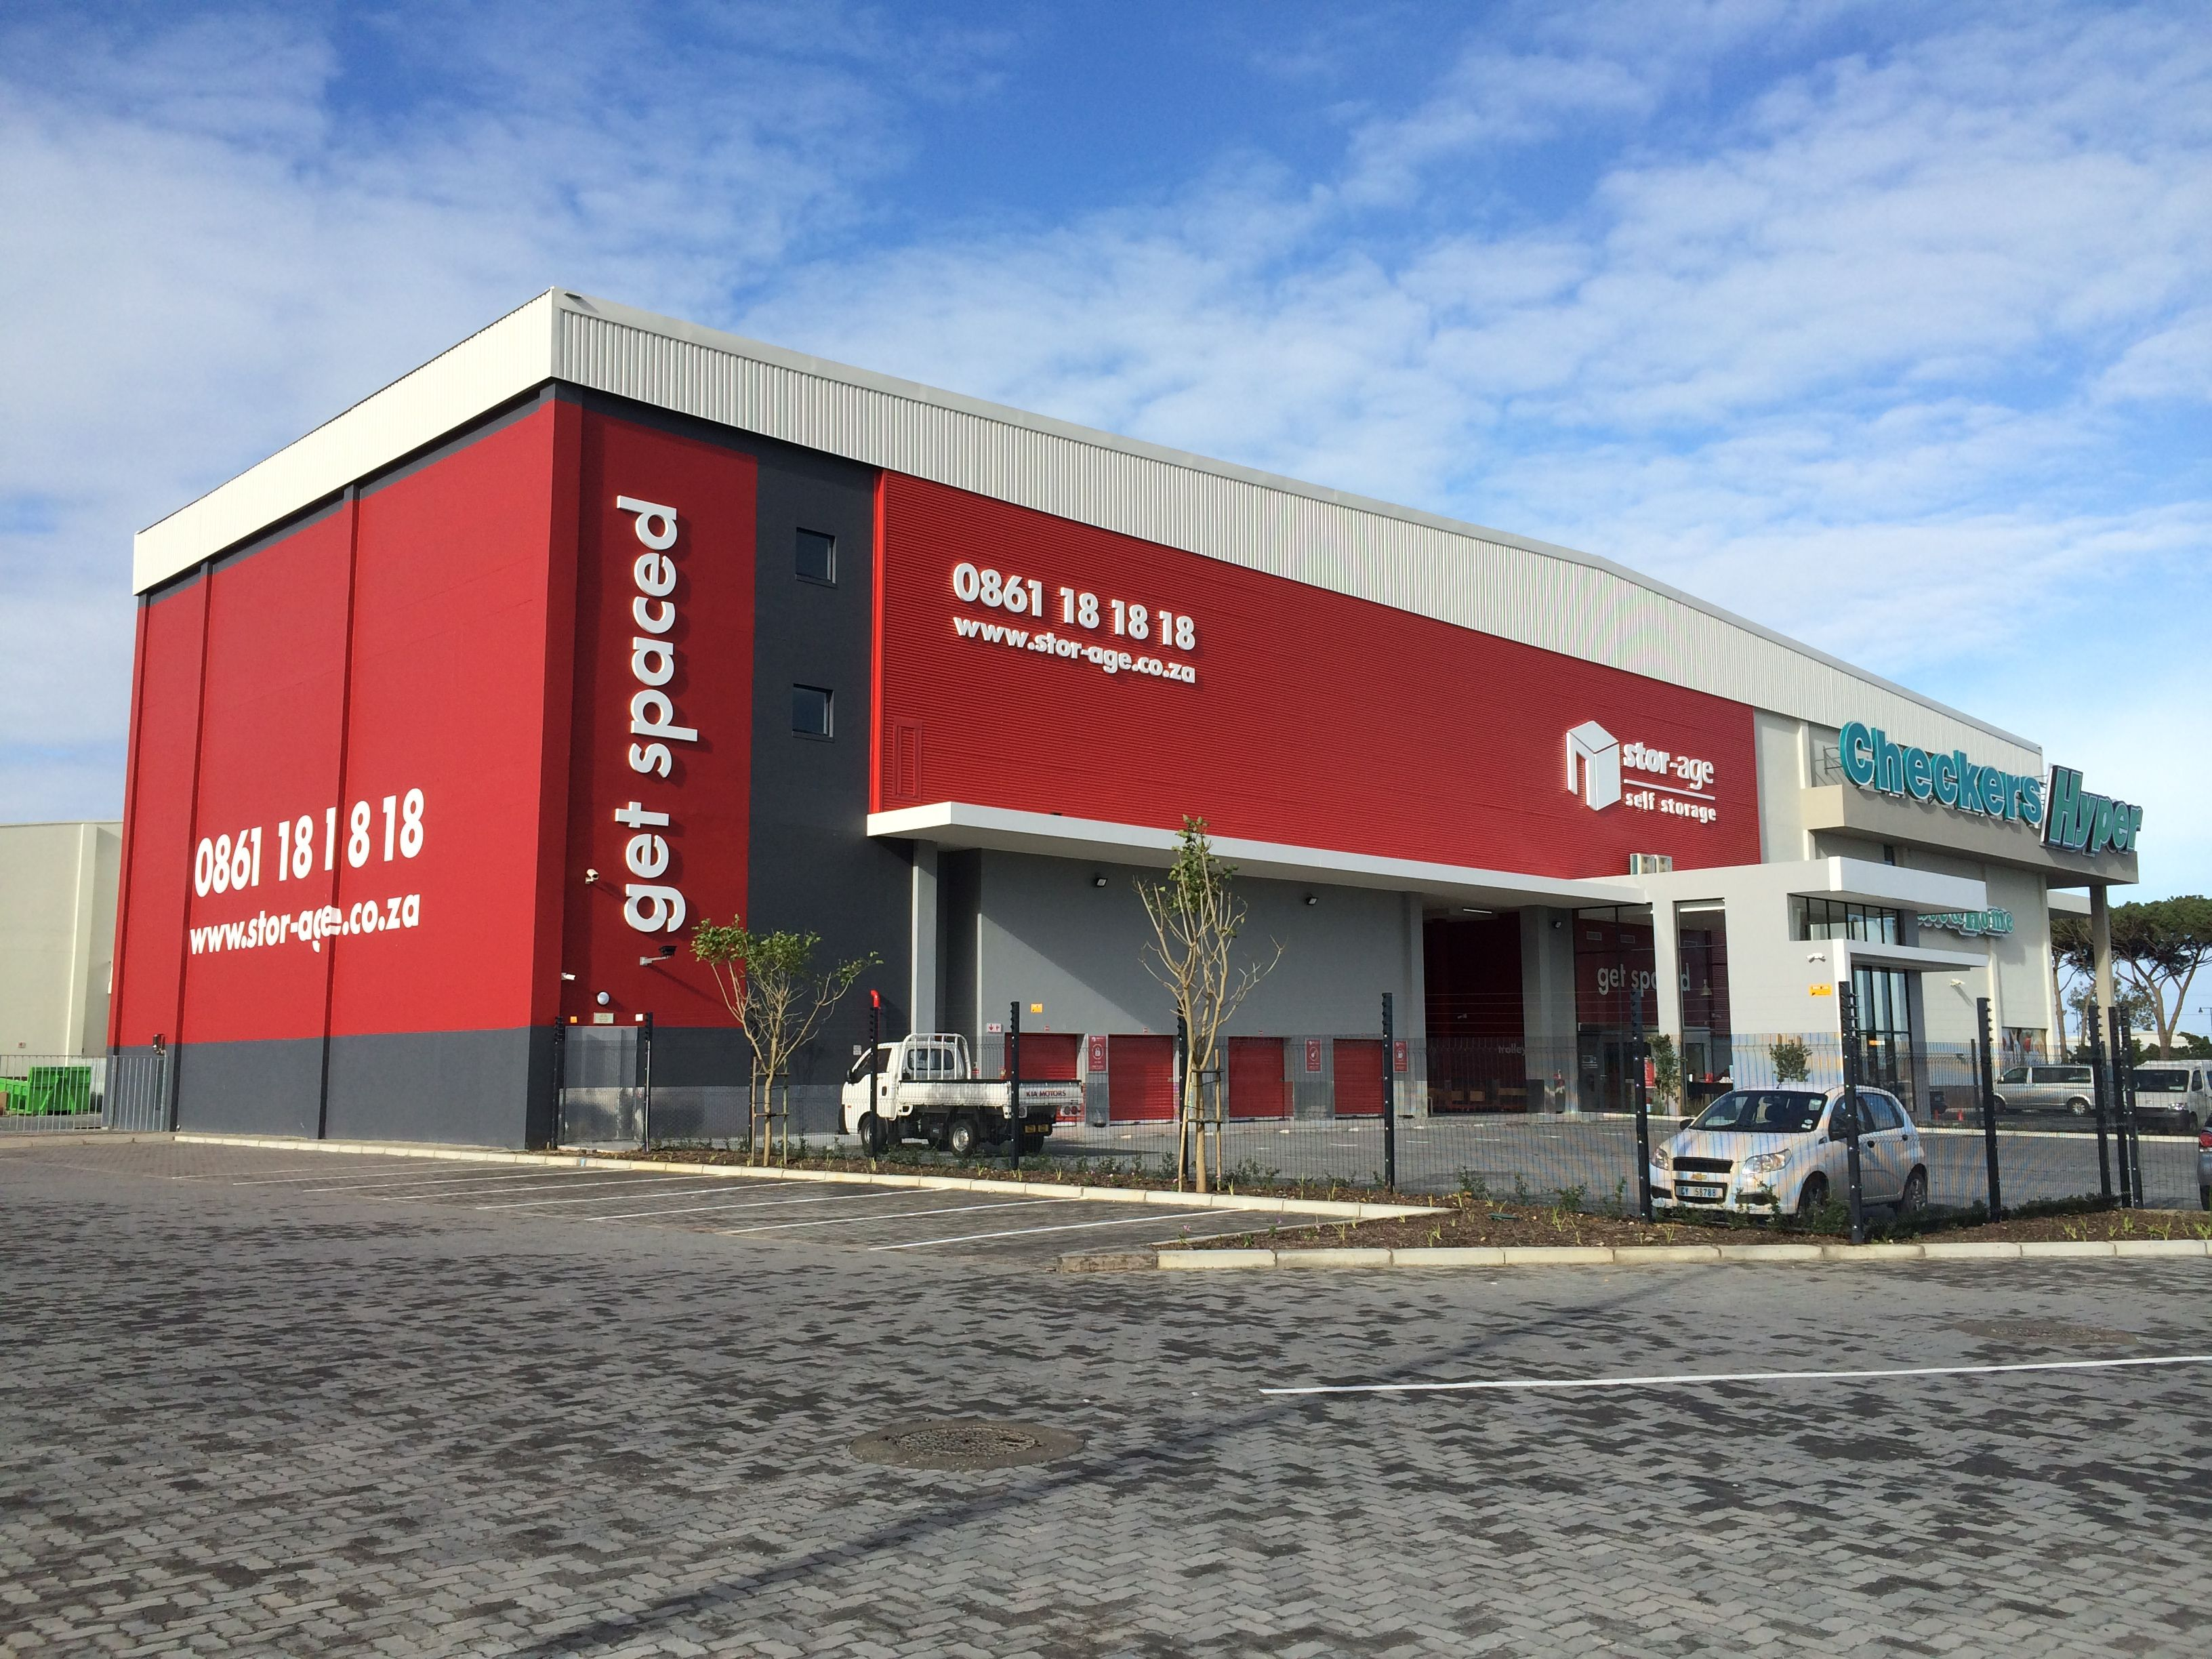 Stor Age Announces Opening Of Somerset West Http Www